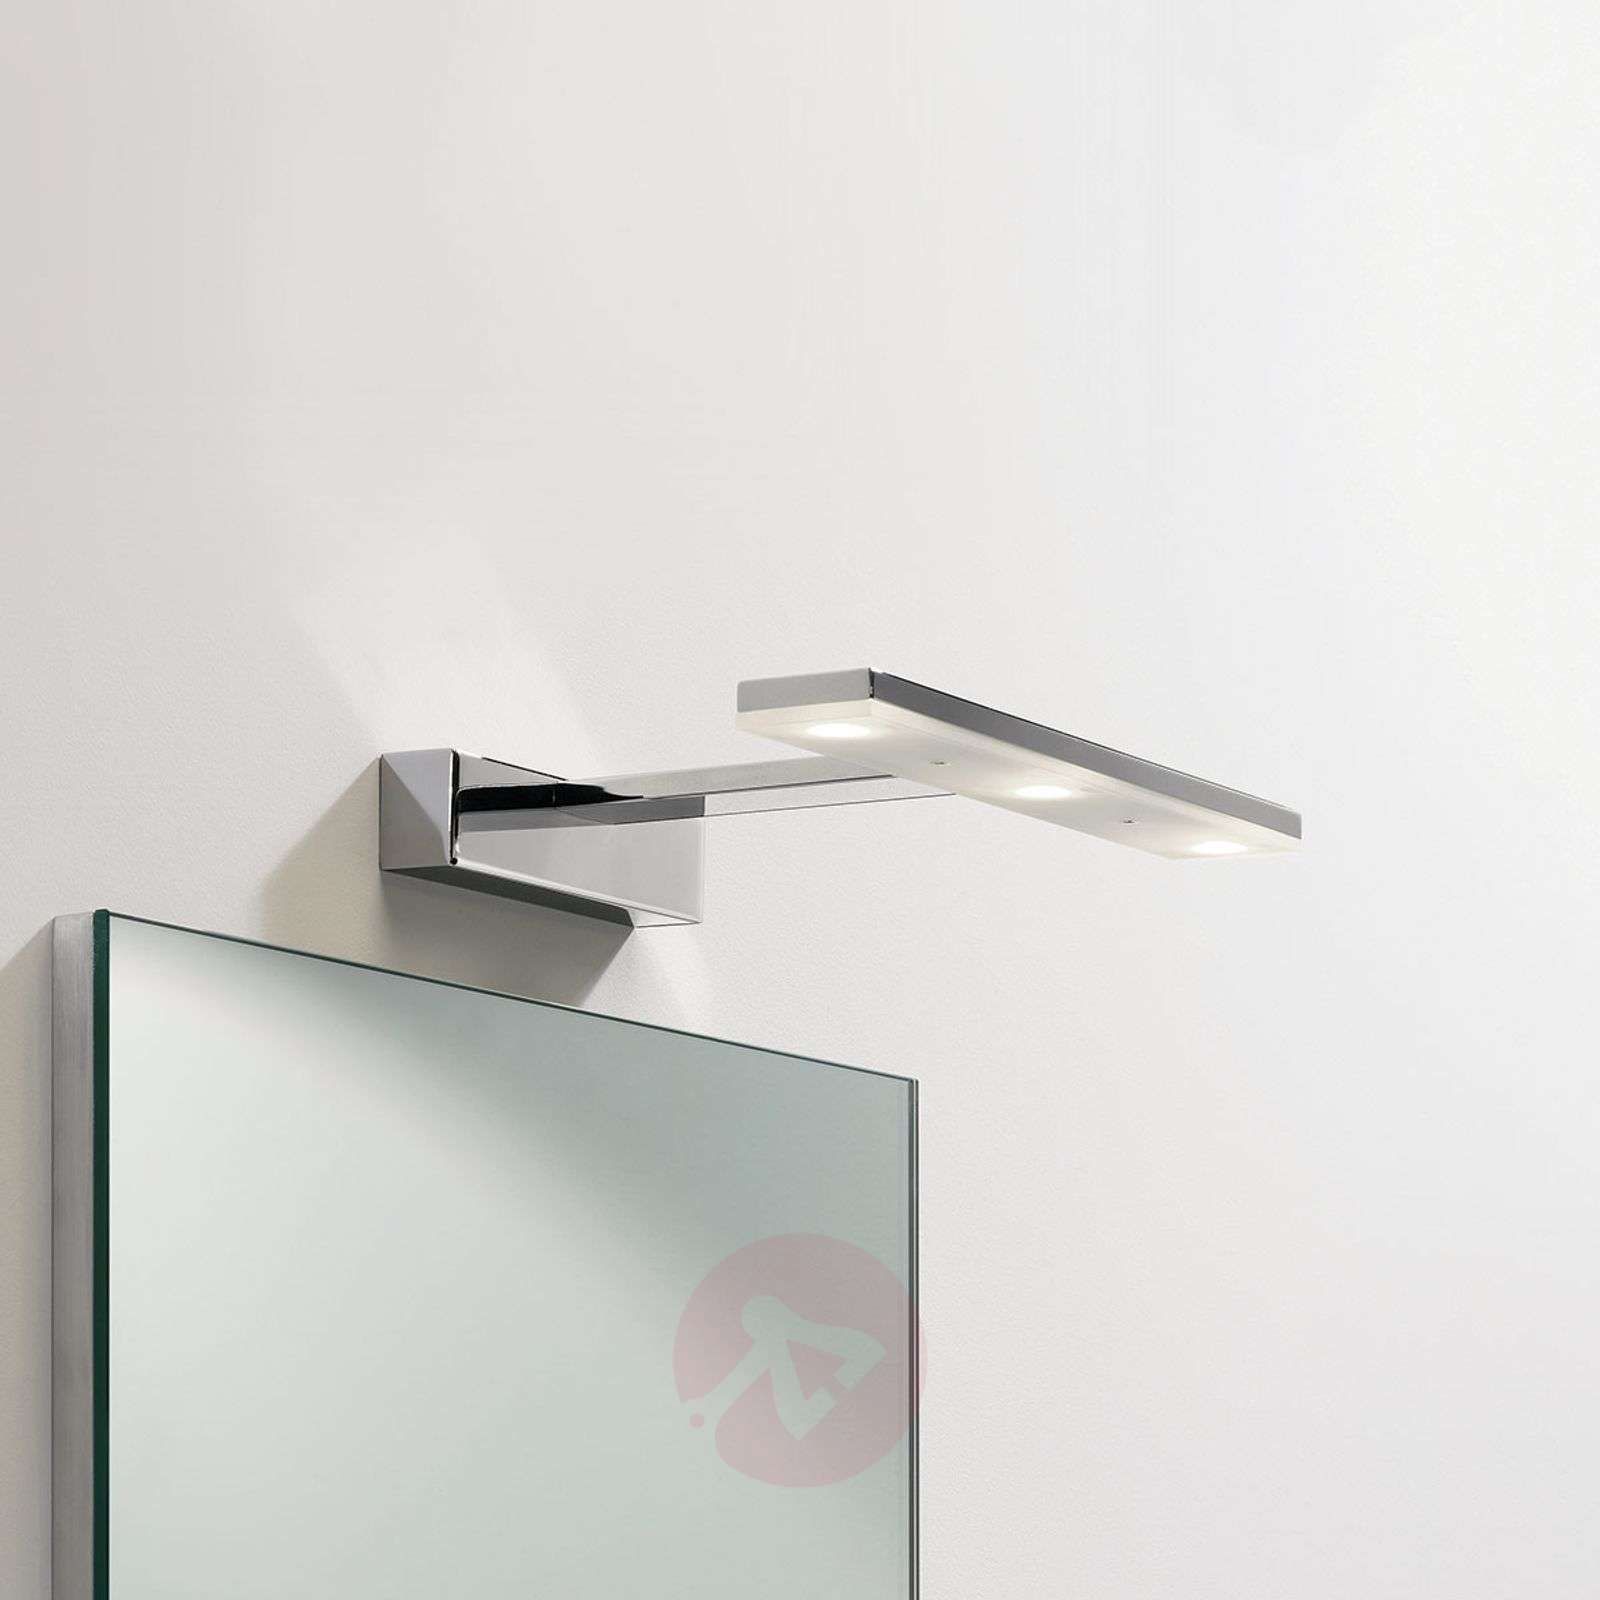 Zip LED Wall Light Innovative-1020386-03